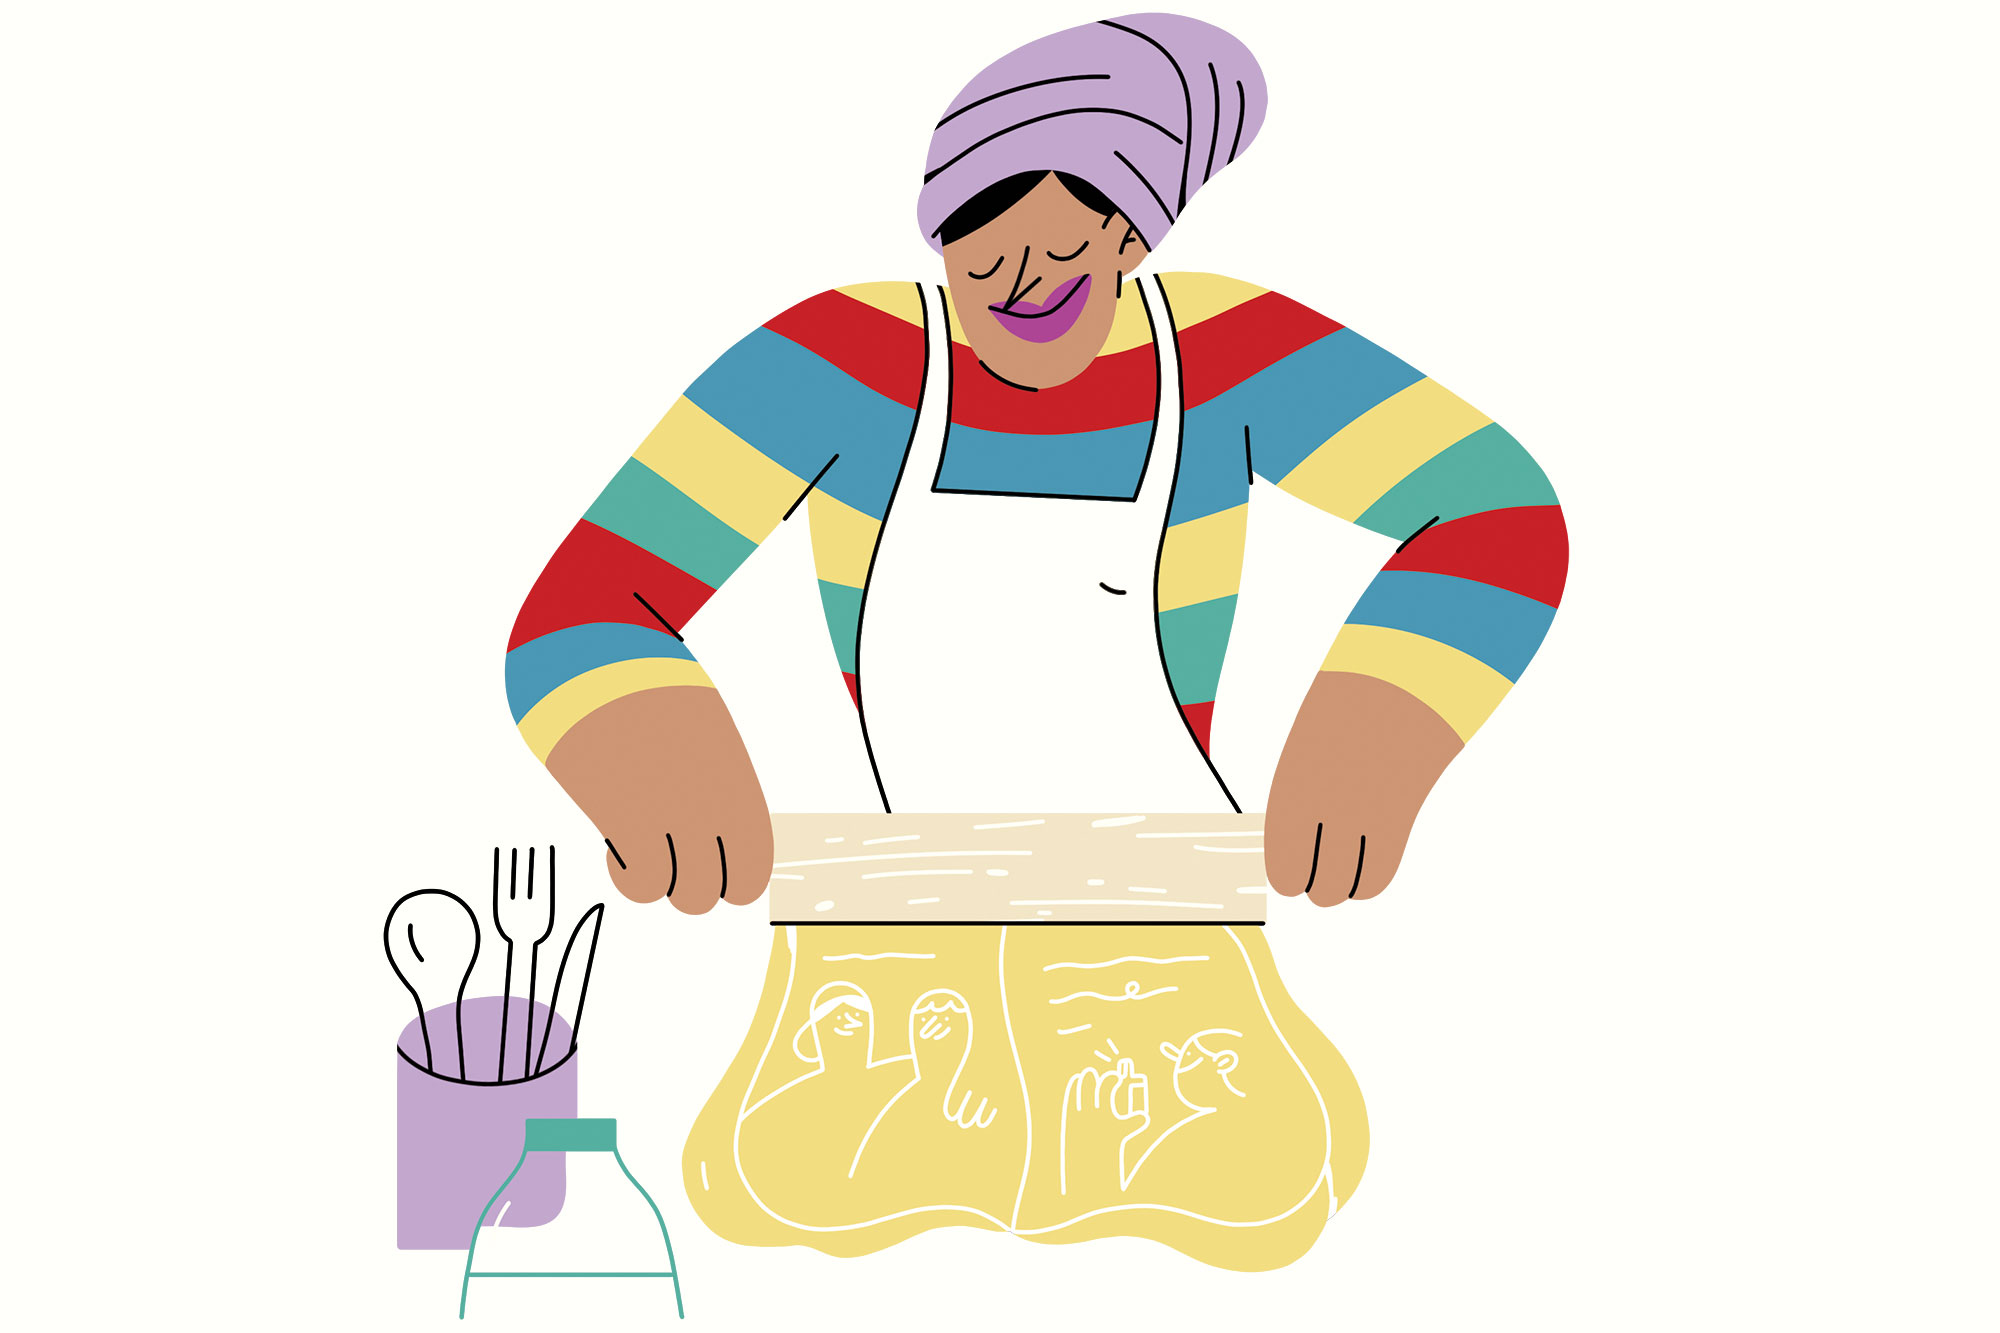 An illustration of a baker rolling out dough